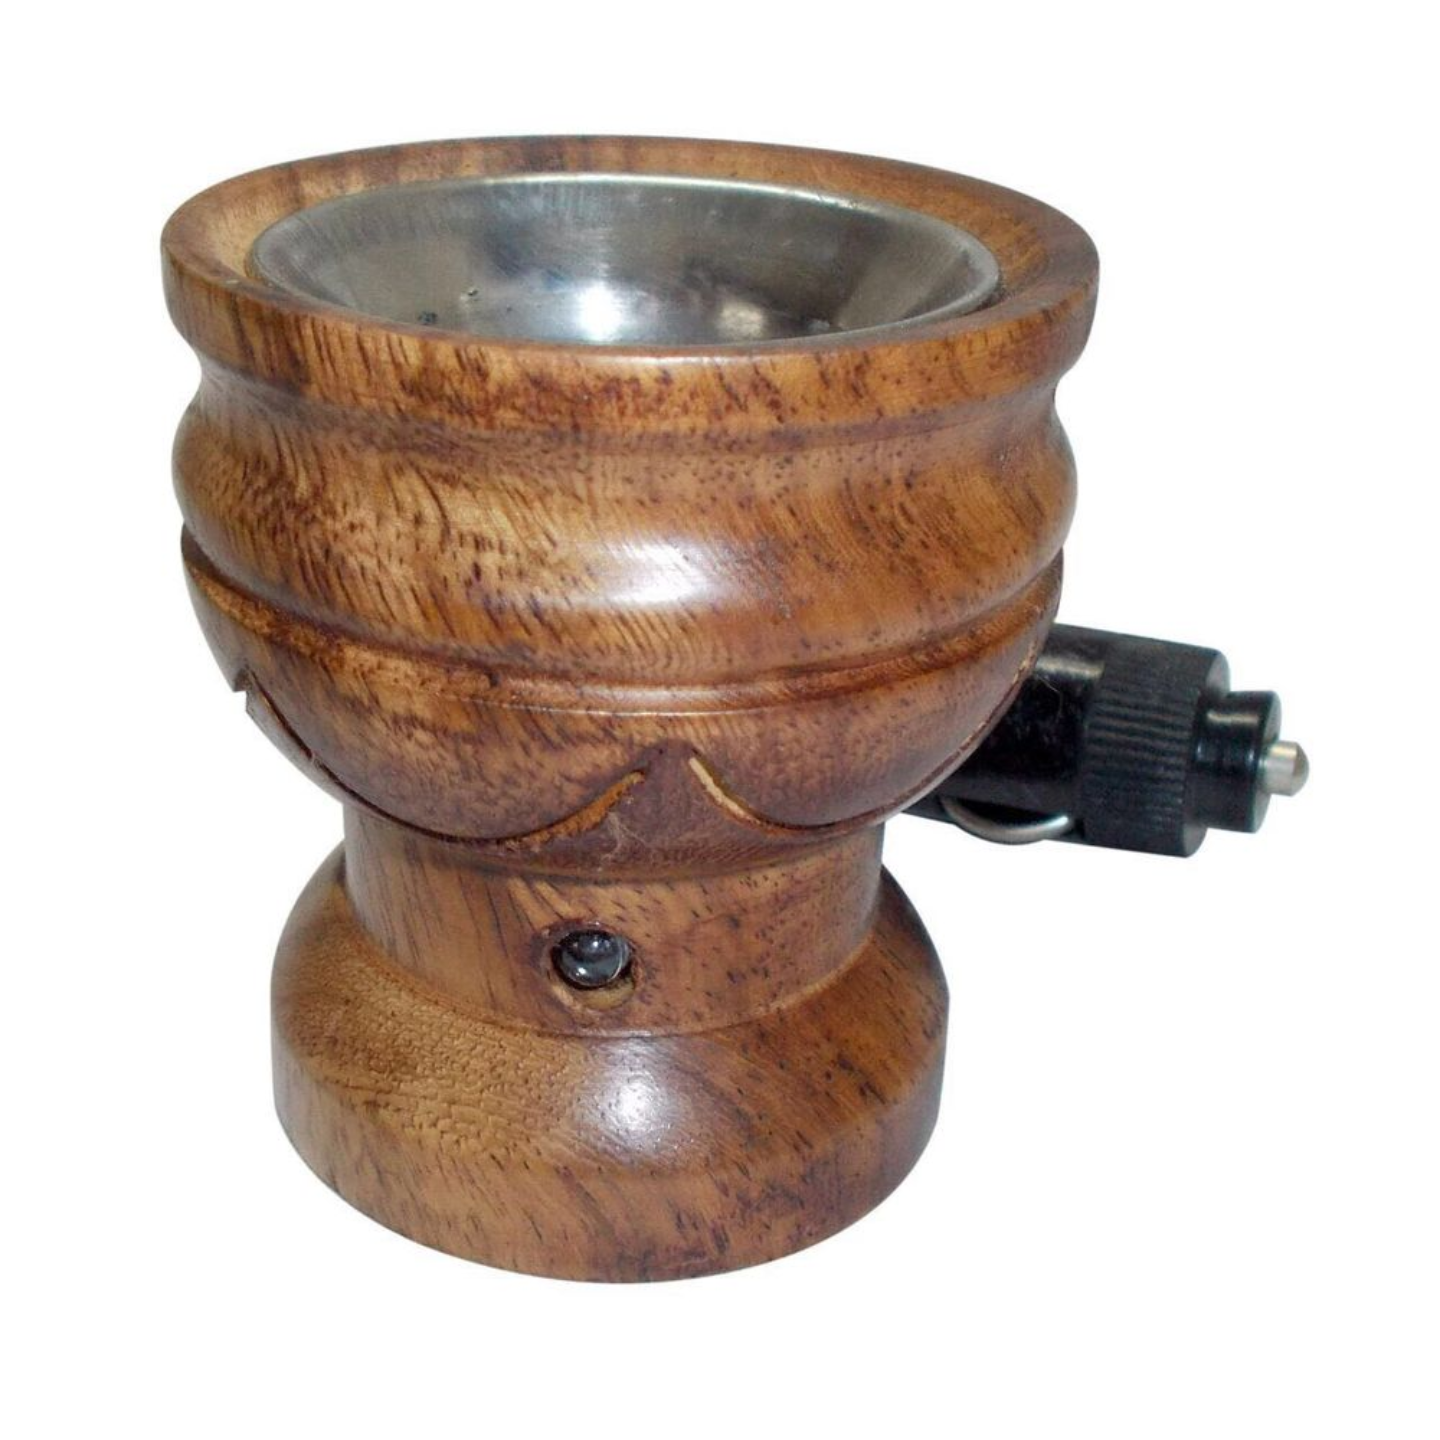 OUD WOOD CAR DC PIN PLUG-in INCENSE BURNER  DIFFUSER SUITABLE FOR OUDBAKHOORLOBAN